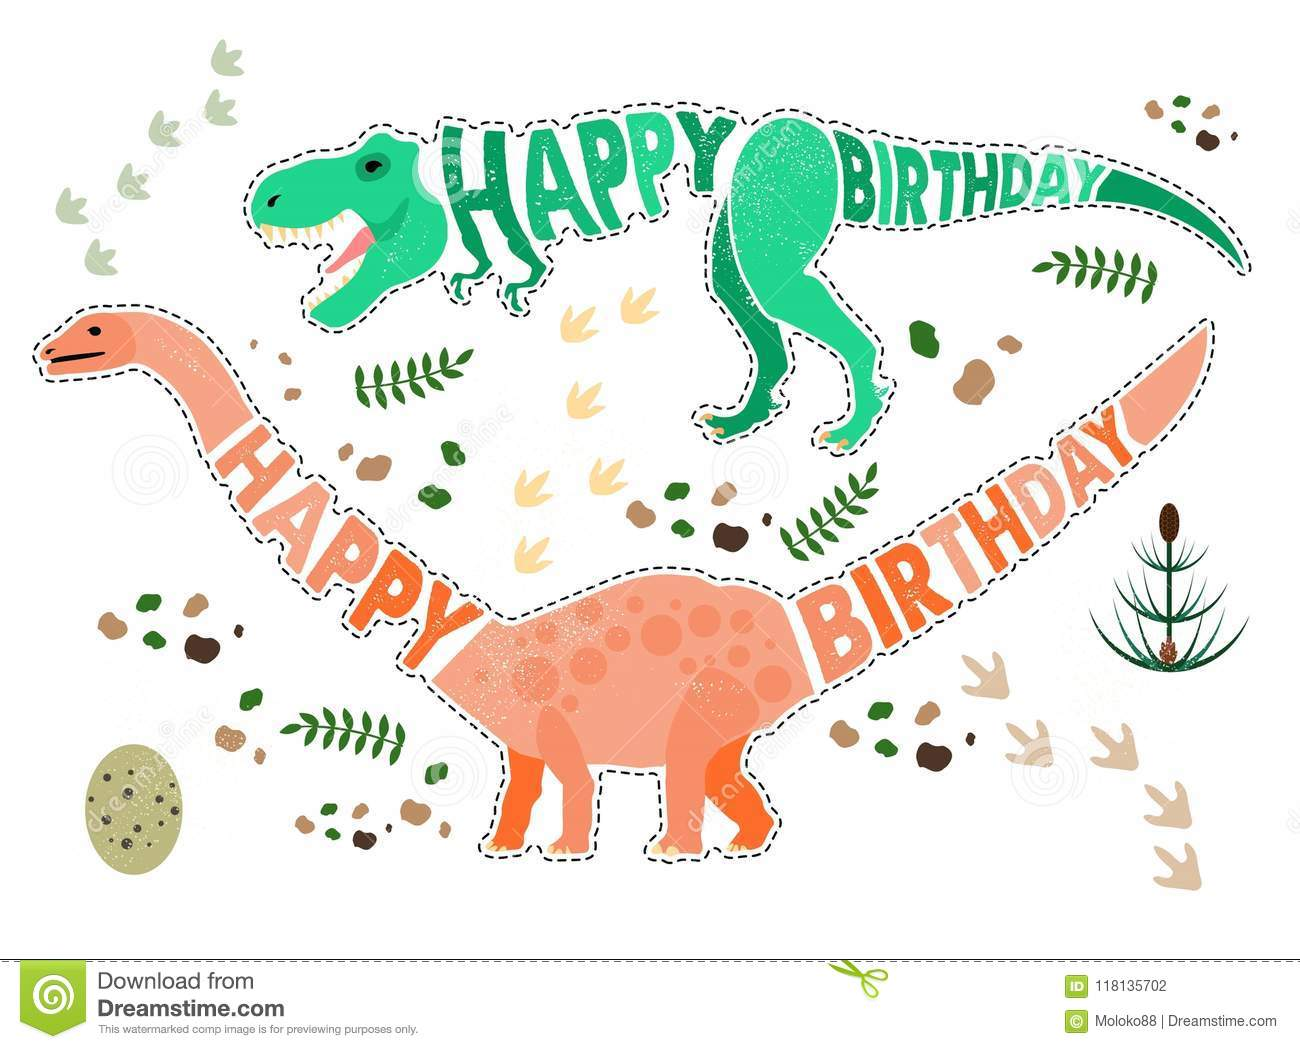 Birthday Card With Dinosaur. Stock Vector - Illustration of invite ...